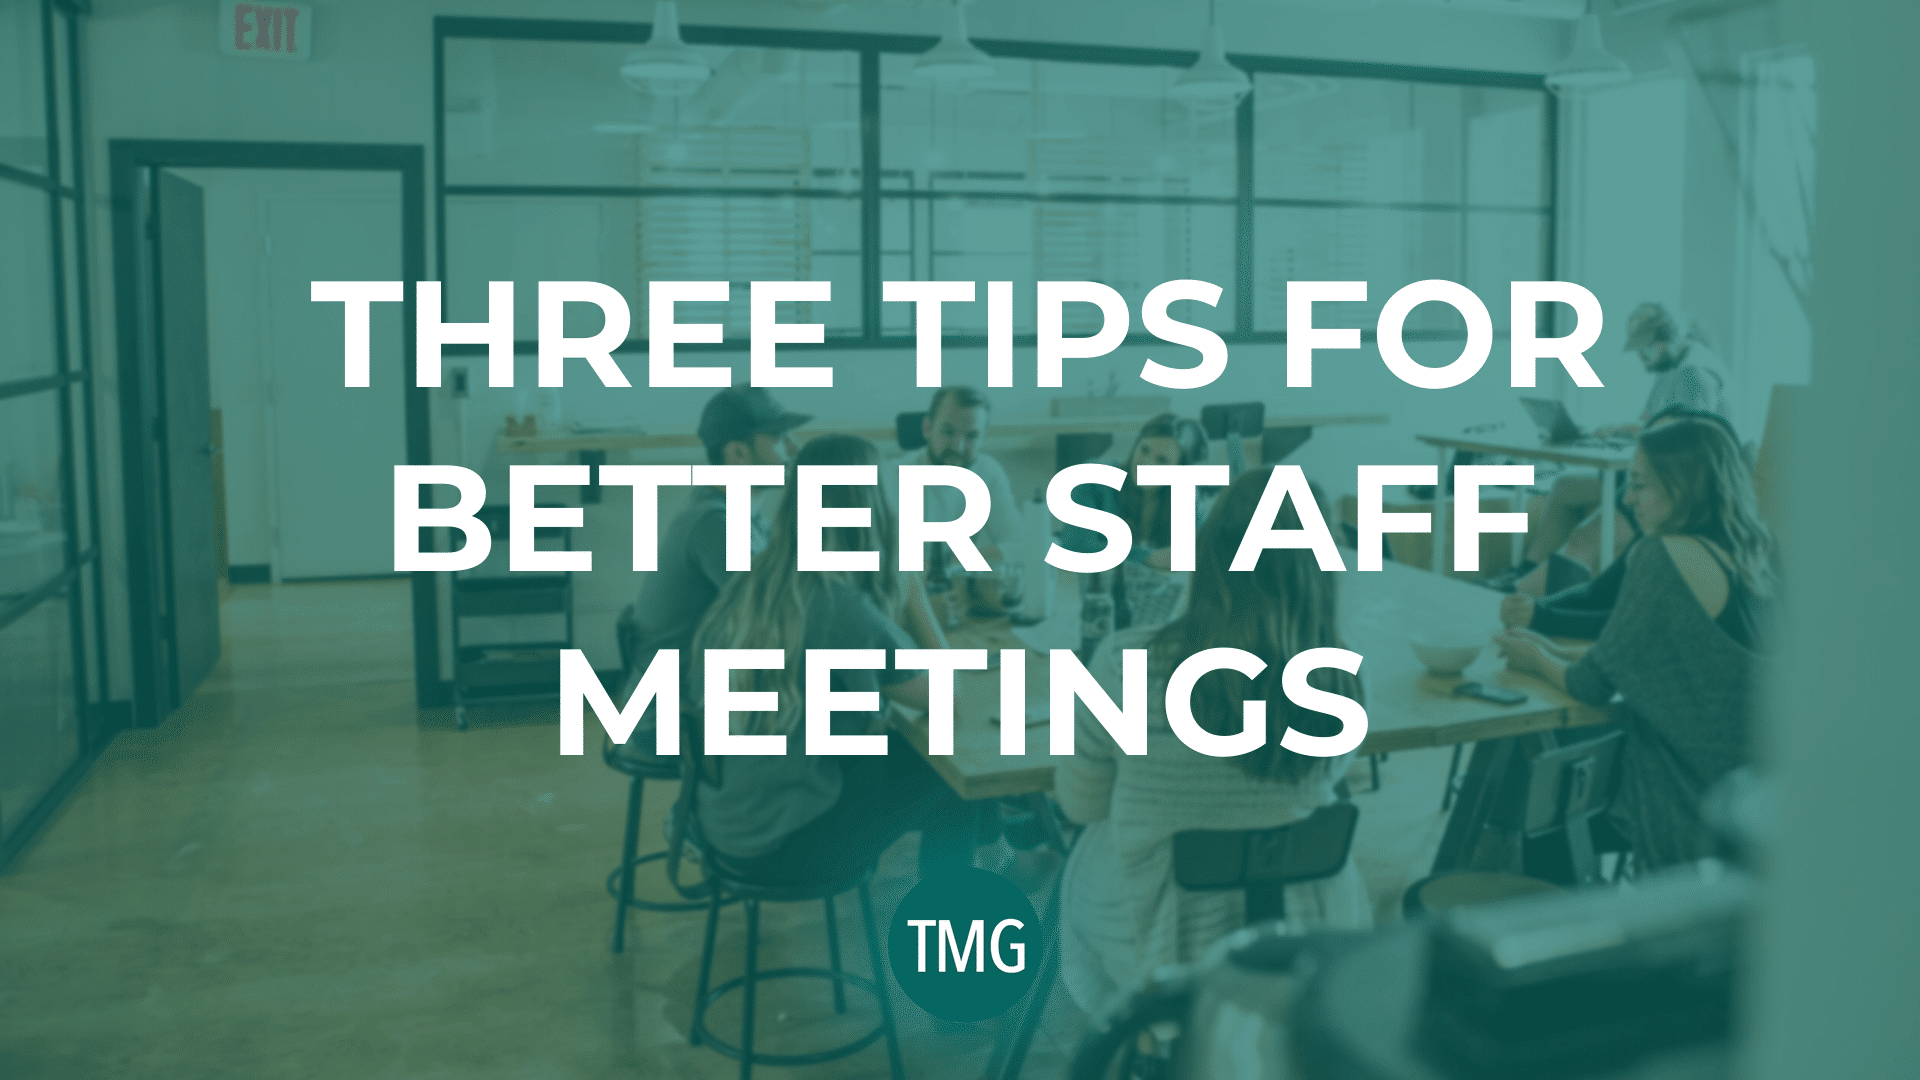 three-tips-for-better-staff-meetings-at-your-church-header-image-the-church-revitalization-podcast